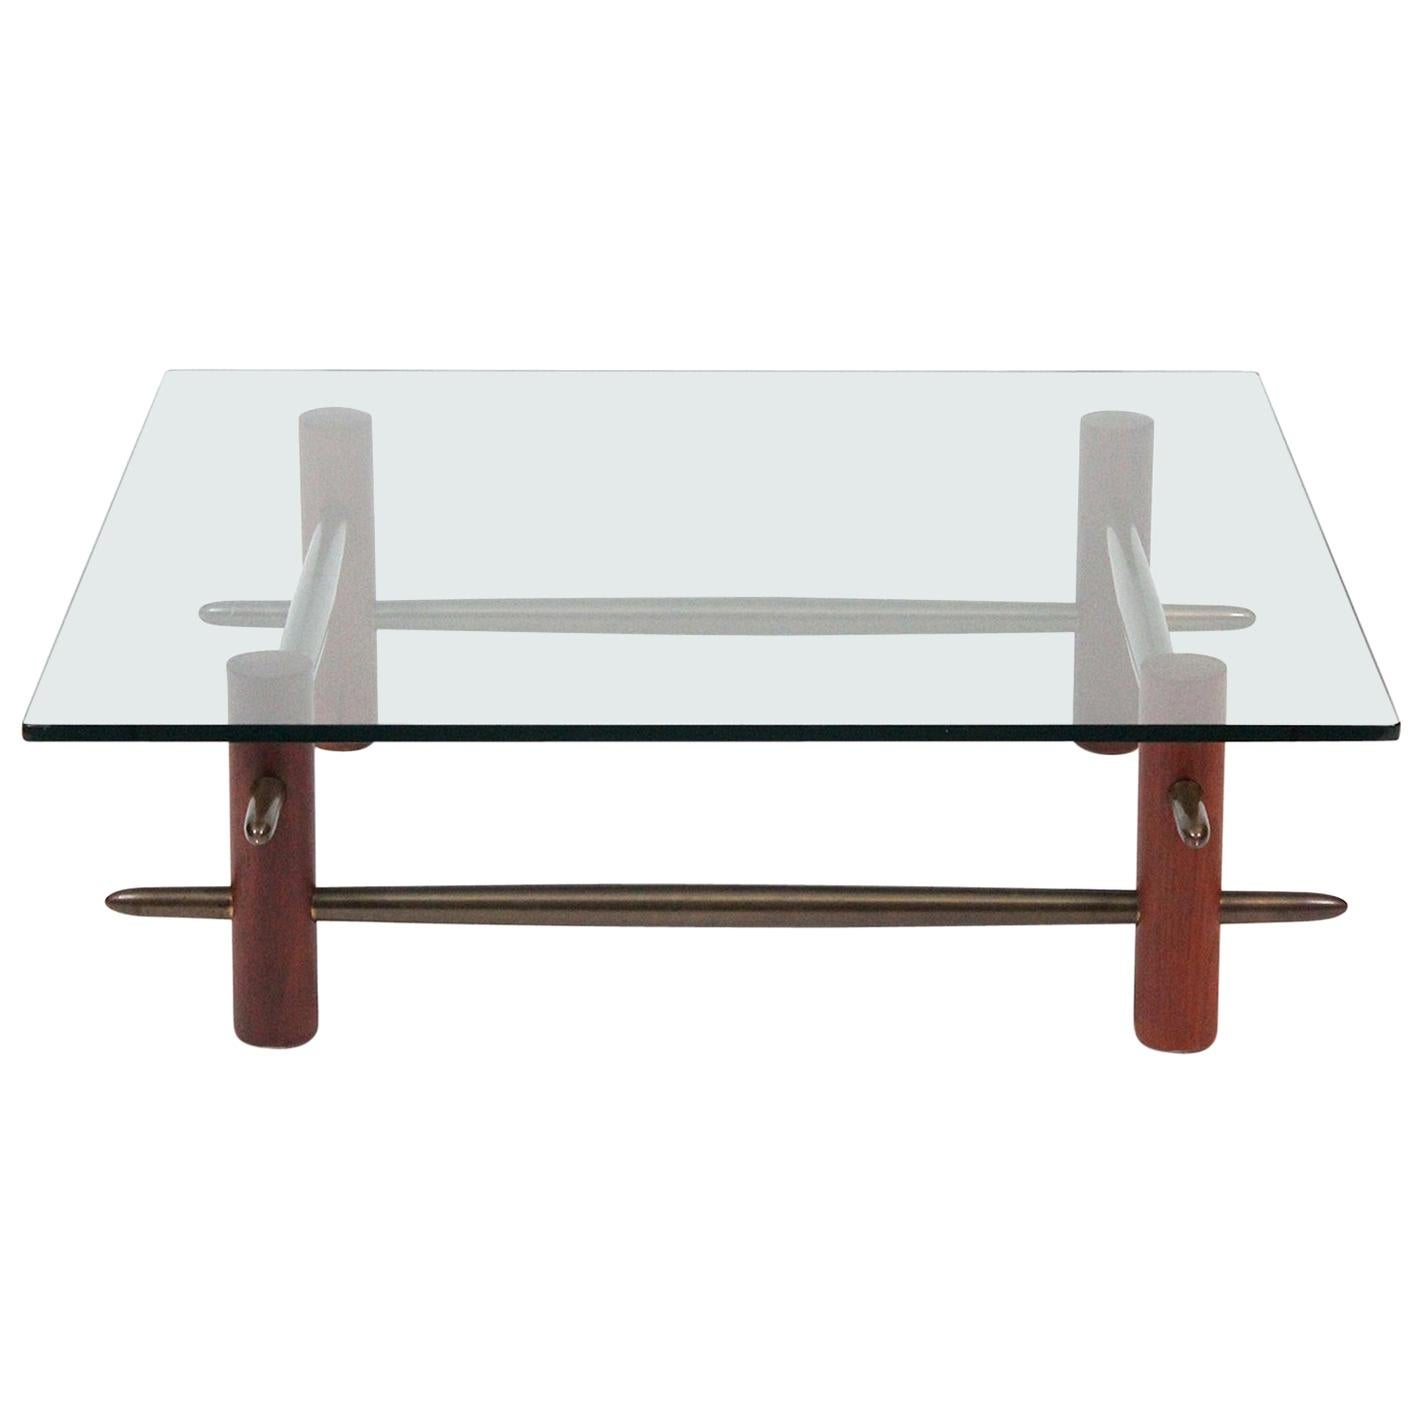 Rare and Early Coffee Table by T.H. Robsjohn-Gibbings